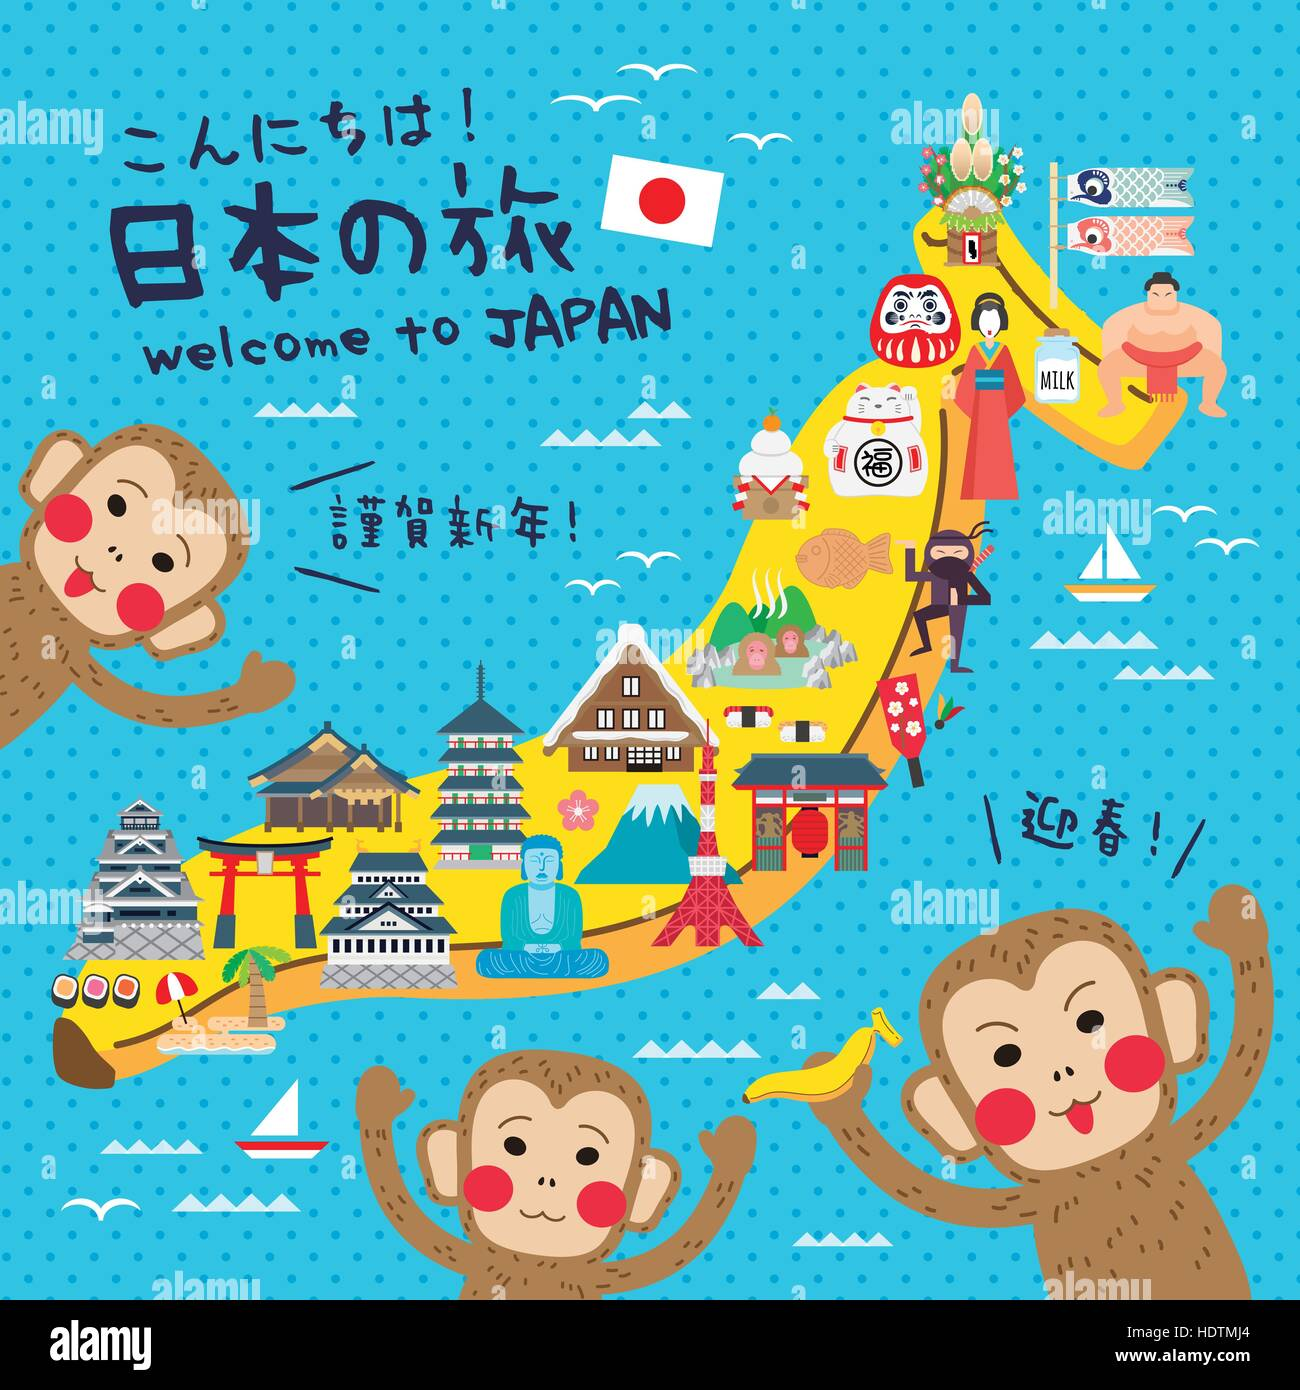 funny japan travel map japan travel and new year greetings in japanese words